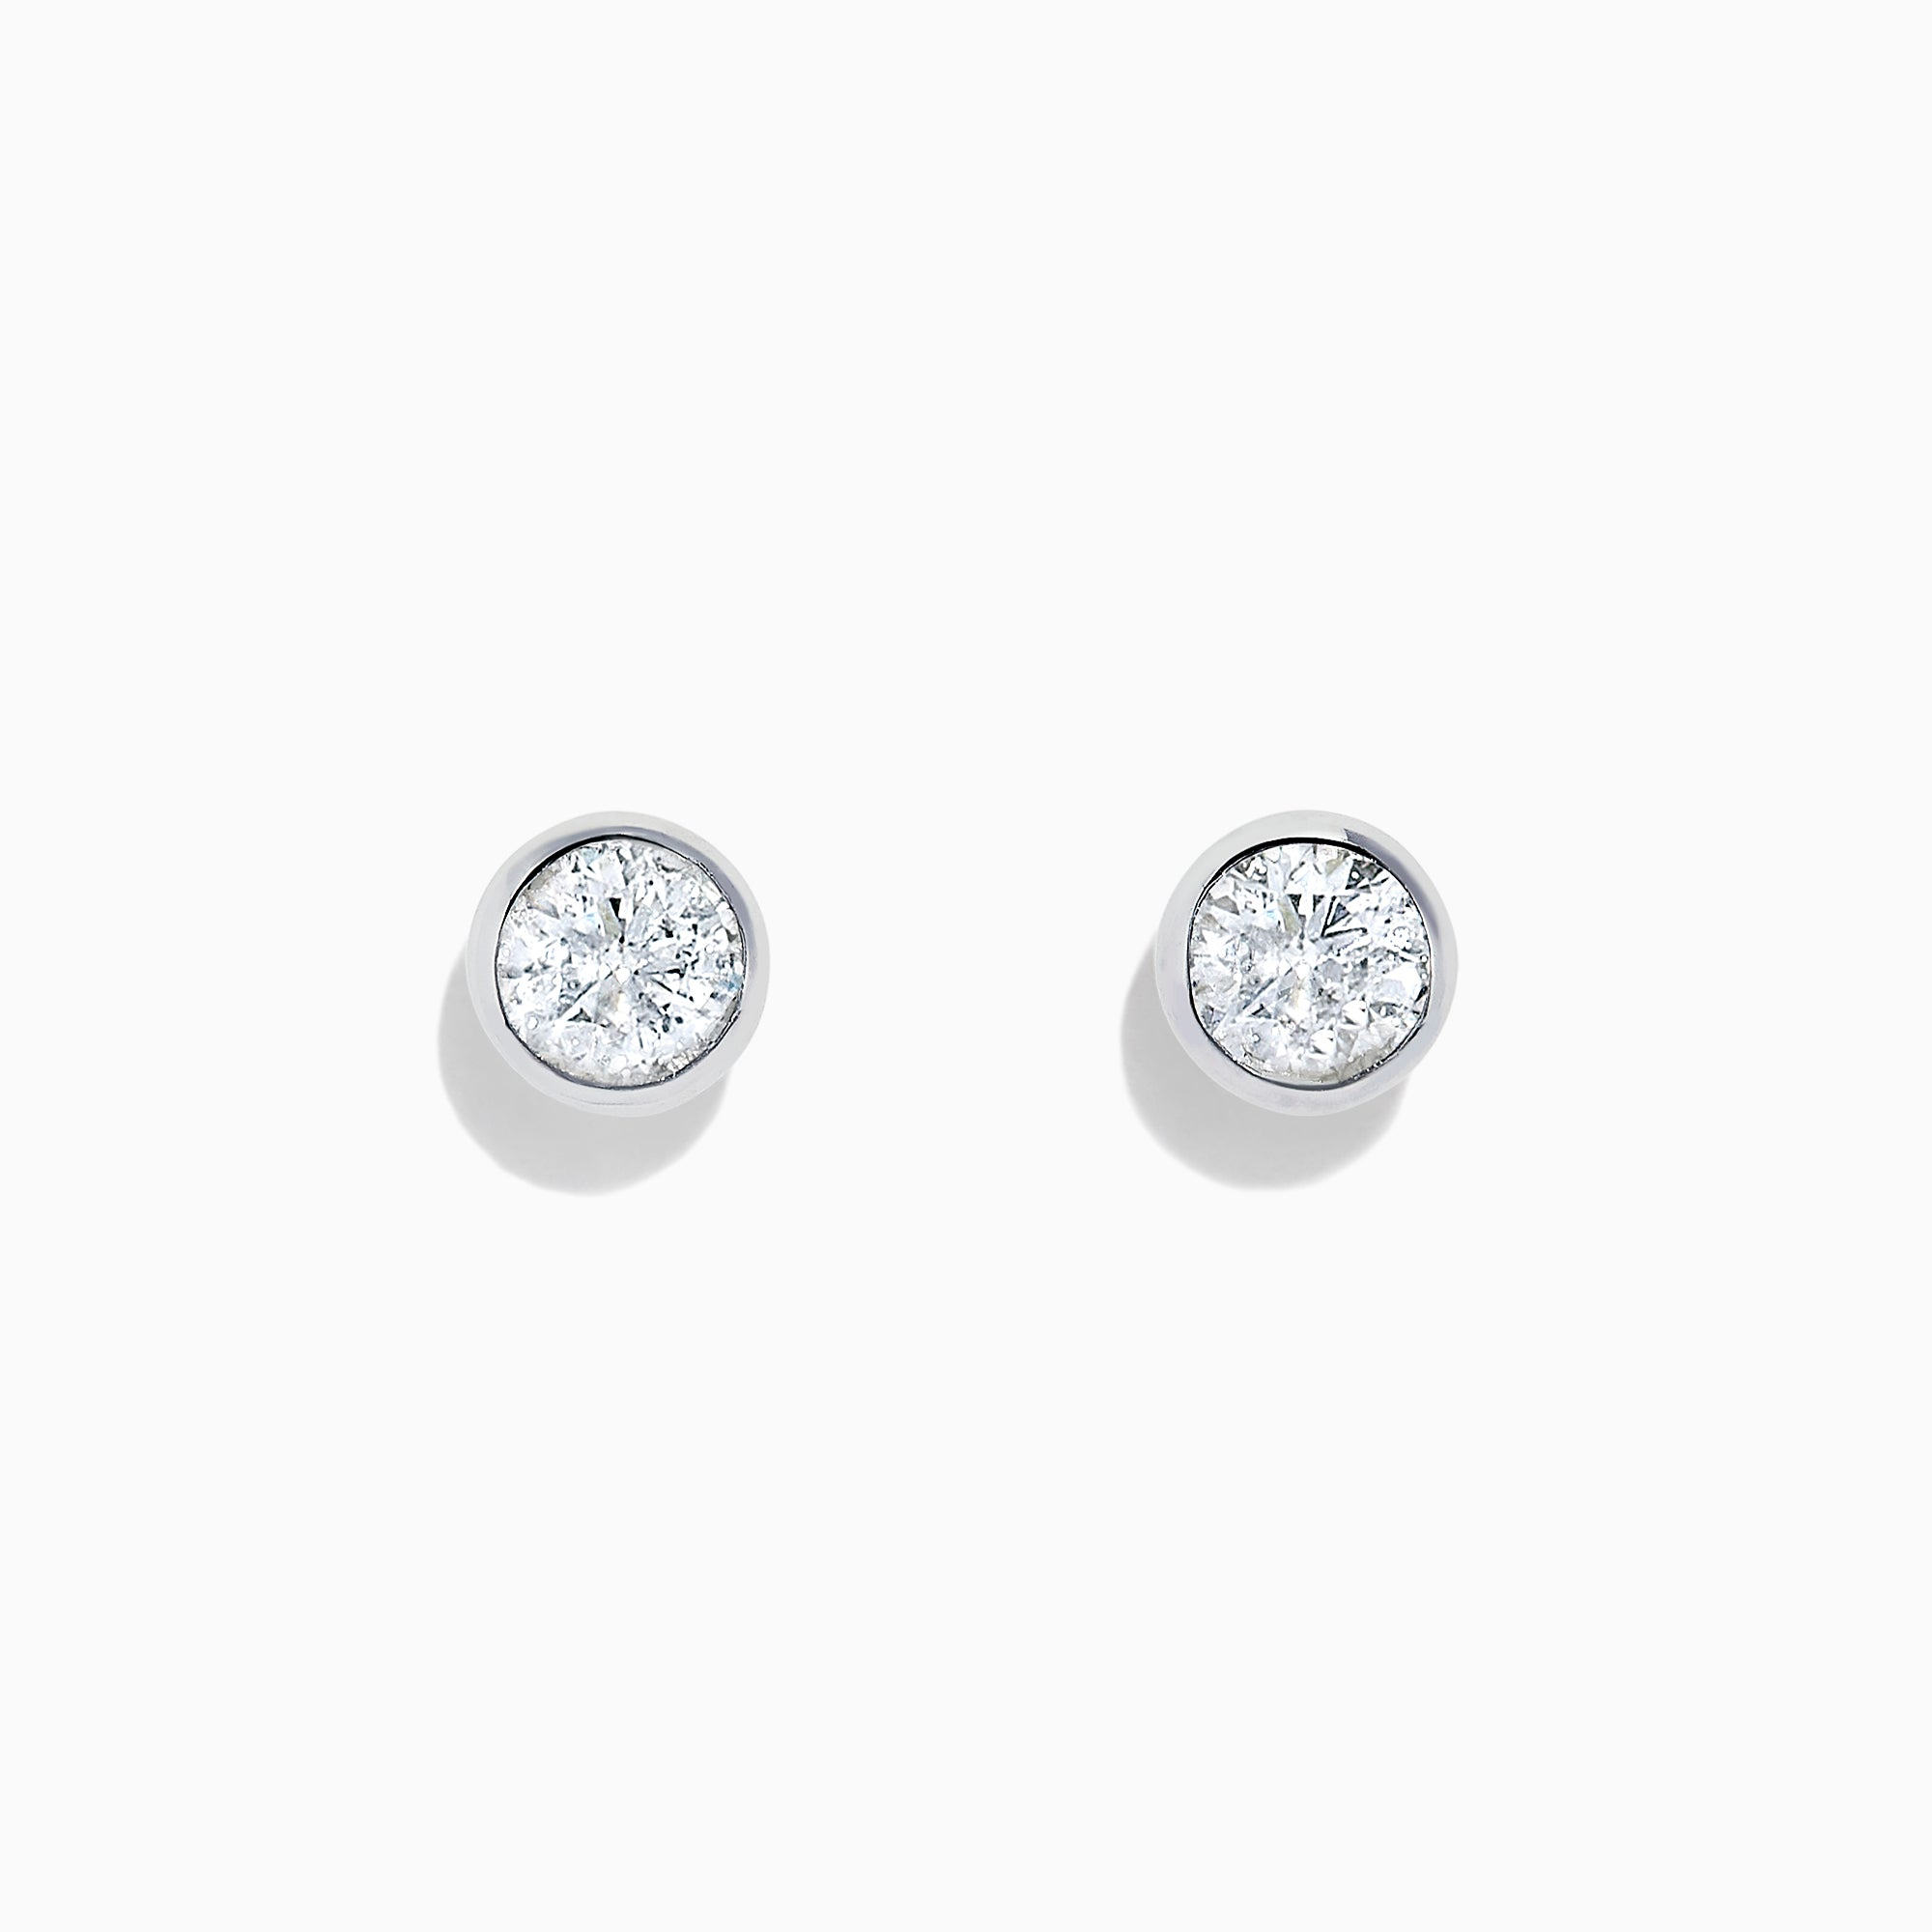 Effy 14K White Gold Diamond Bezel Set Stud Earrings, 0.98 TCW